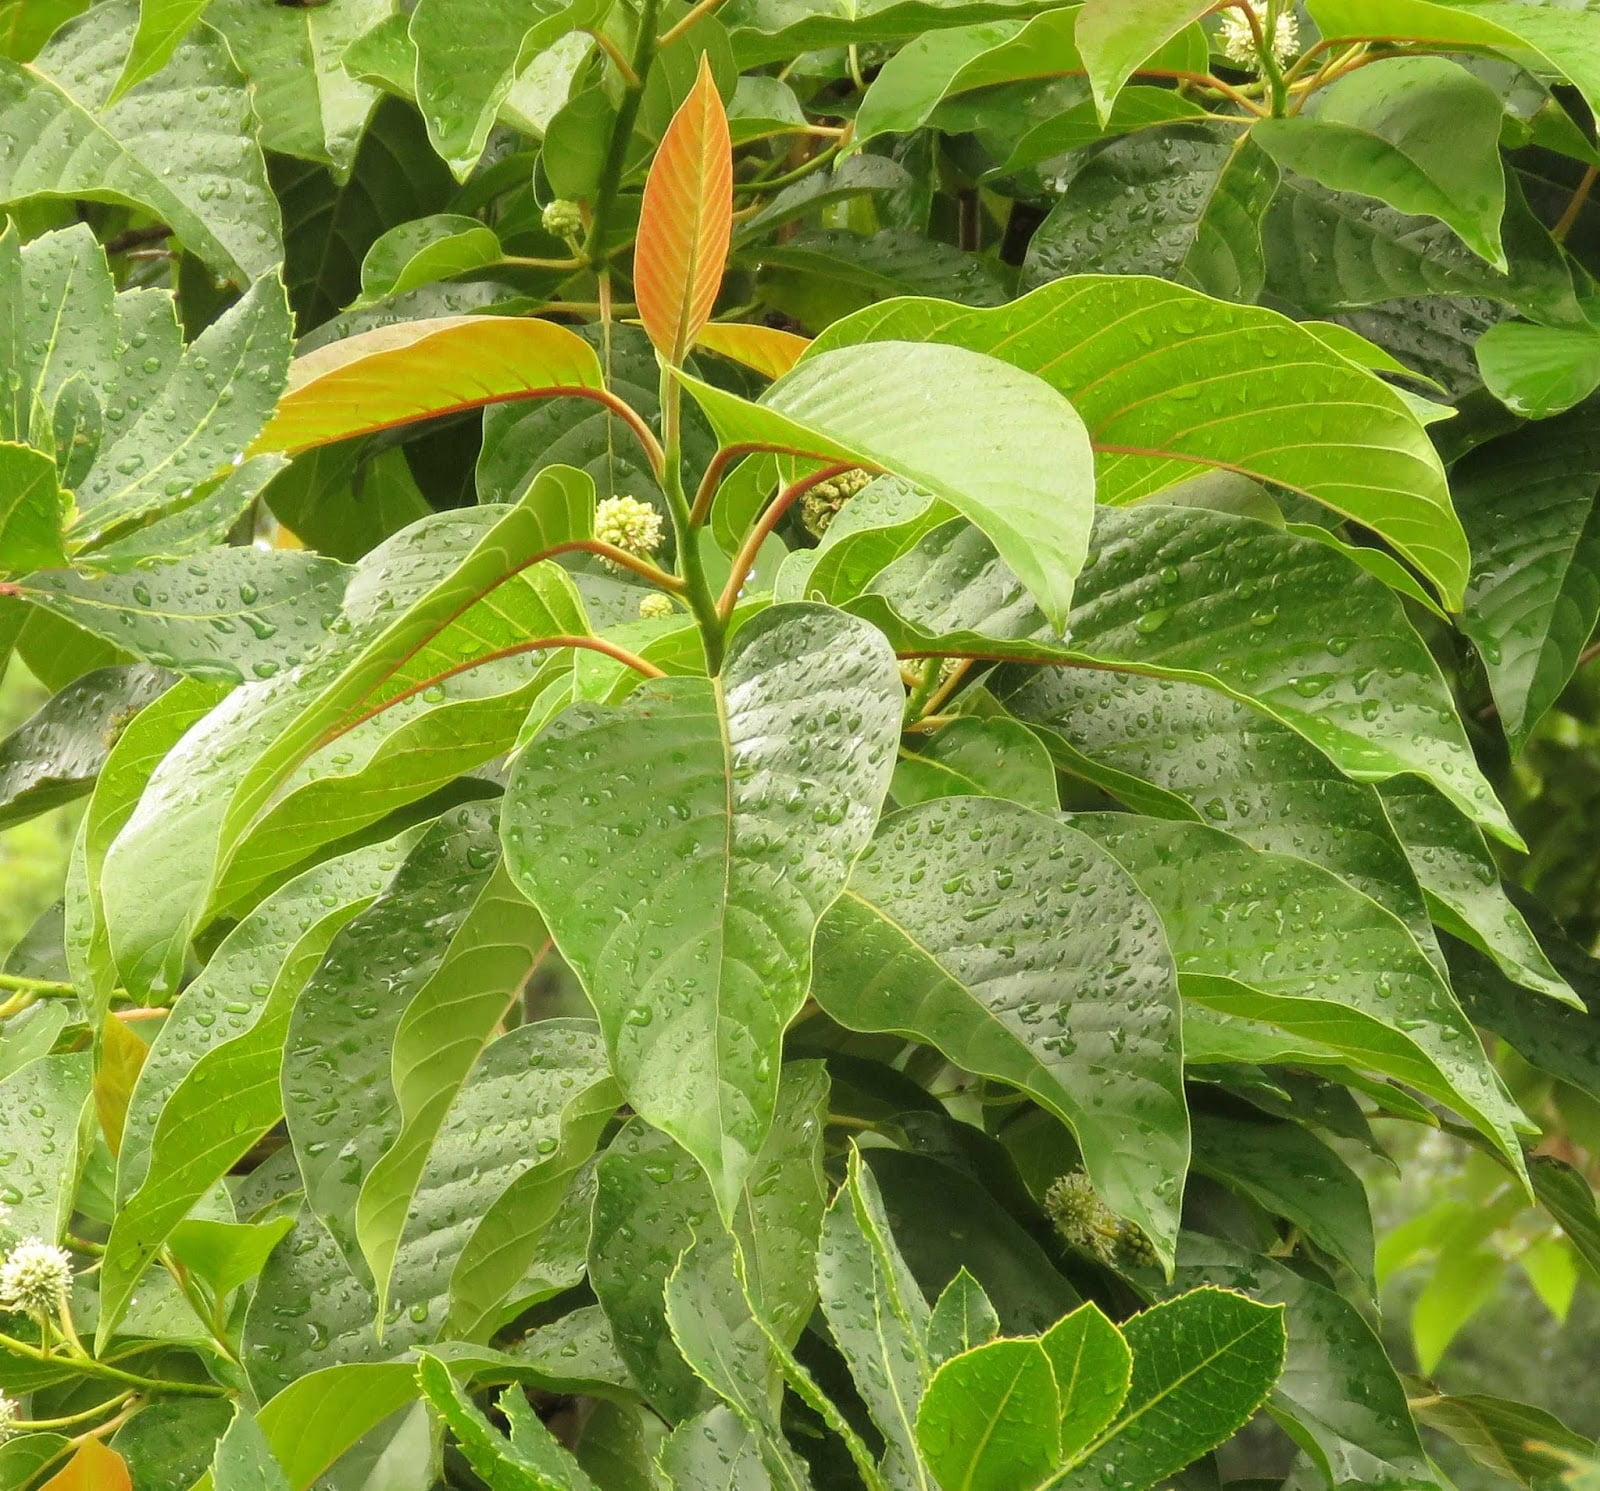 Foliage on Camtotheca acuminata